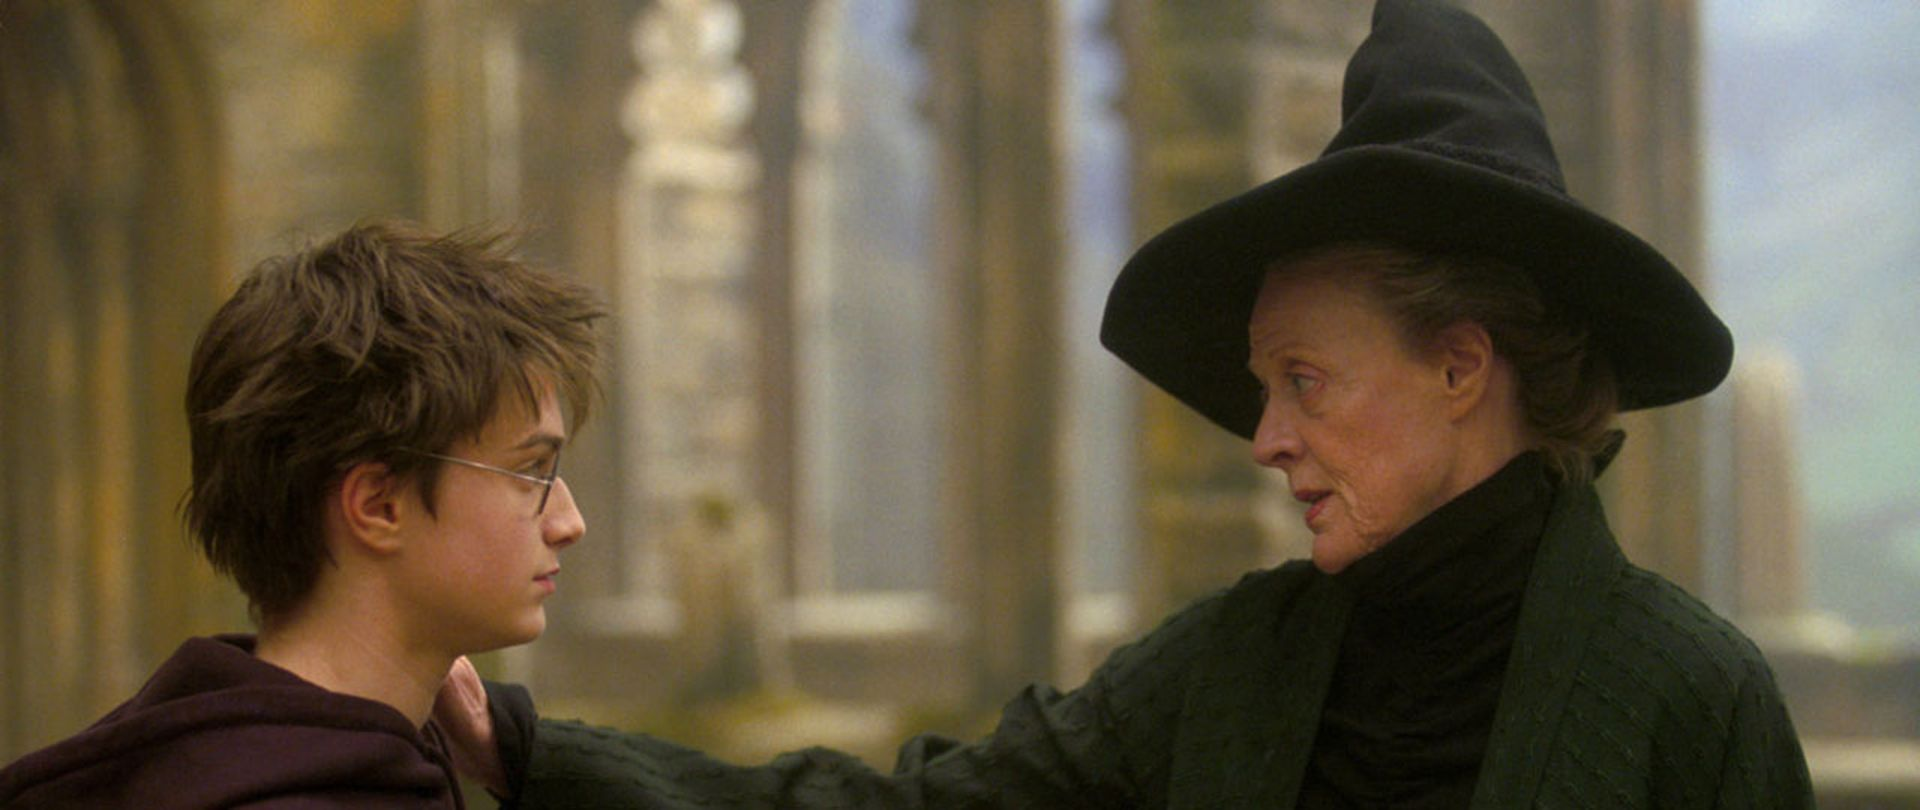 A Definitive Ranking Of The Harry Potter Professors